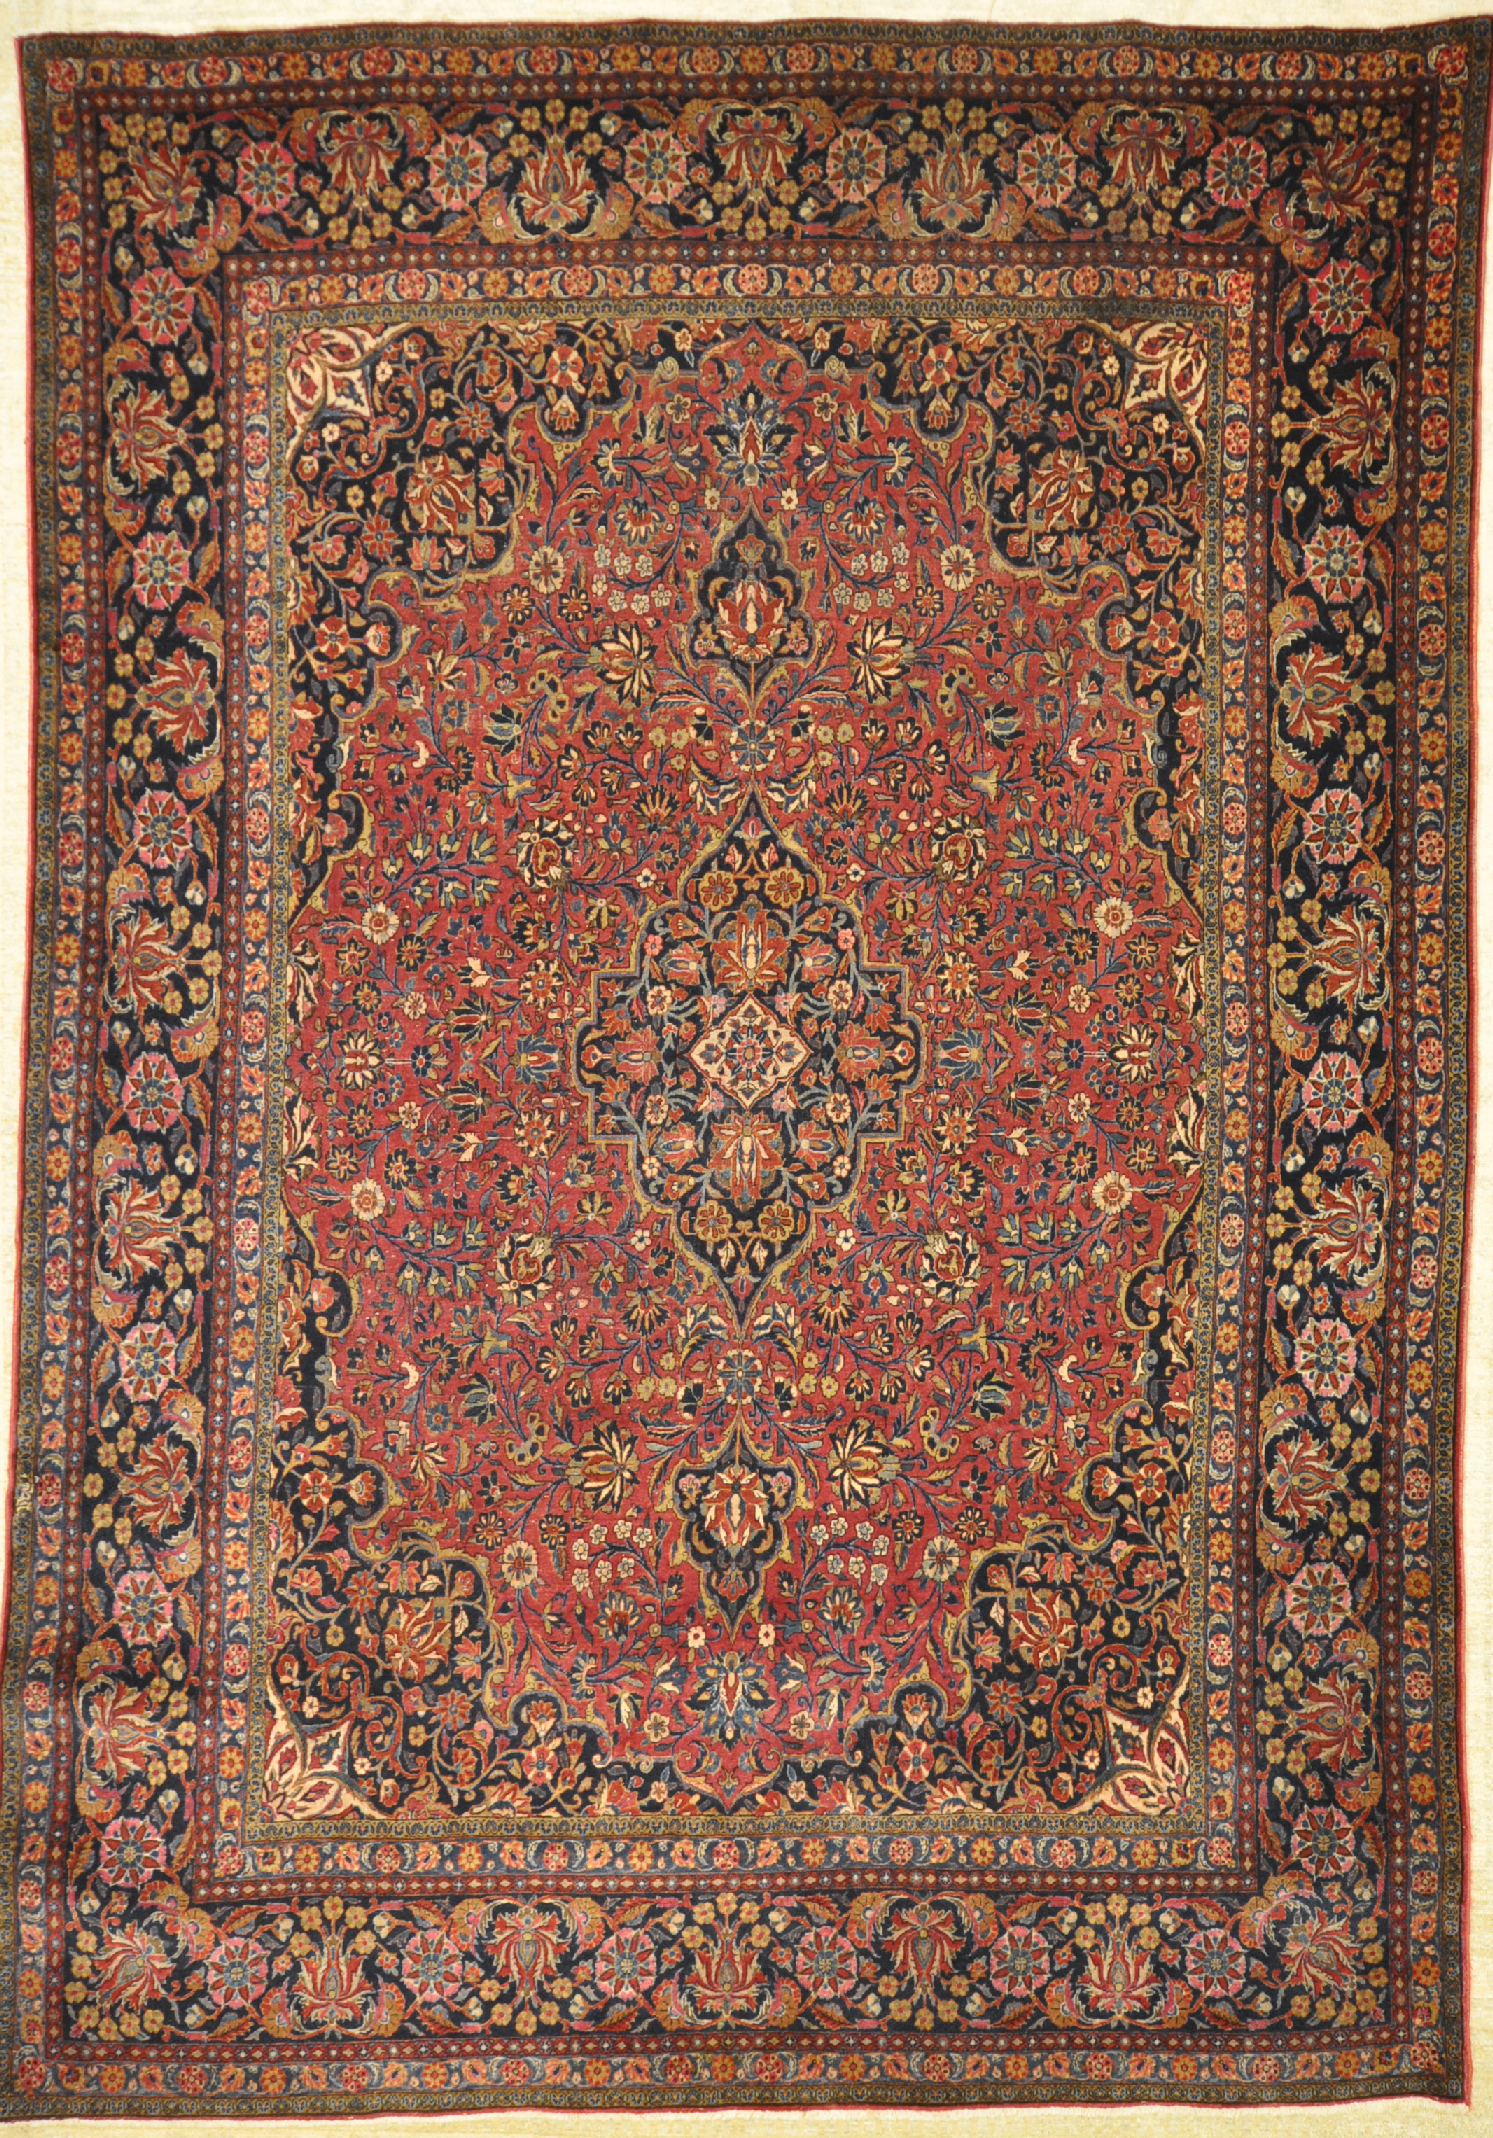 Antique manchester Kashan rug with the softest wool woven in central Persia. Ca. 1880.